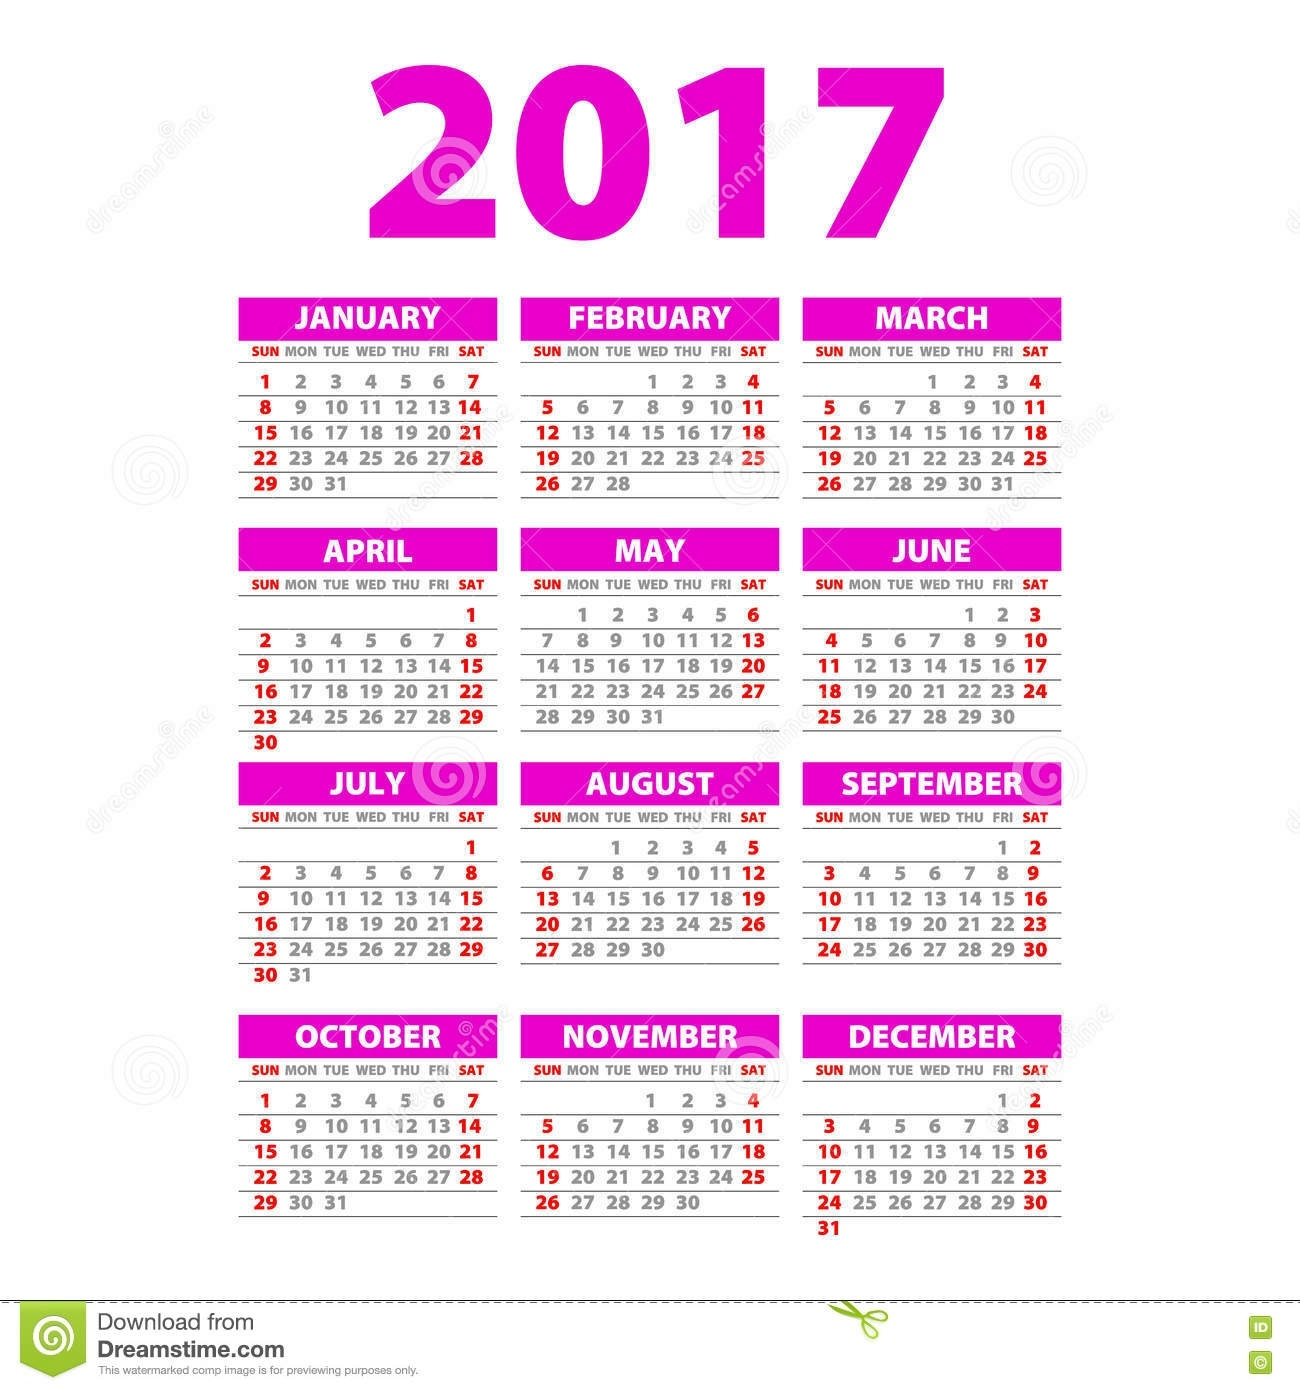 Whole Year Calendars - Colona.rsd7 Extraordinary Calendars For The Whole Year